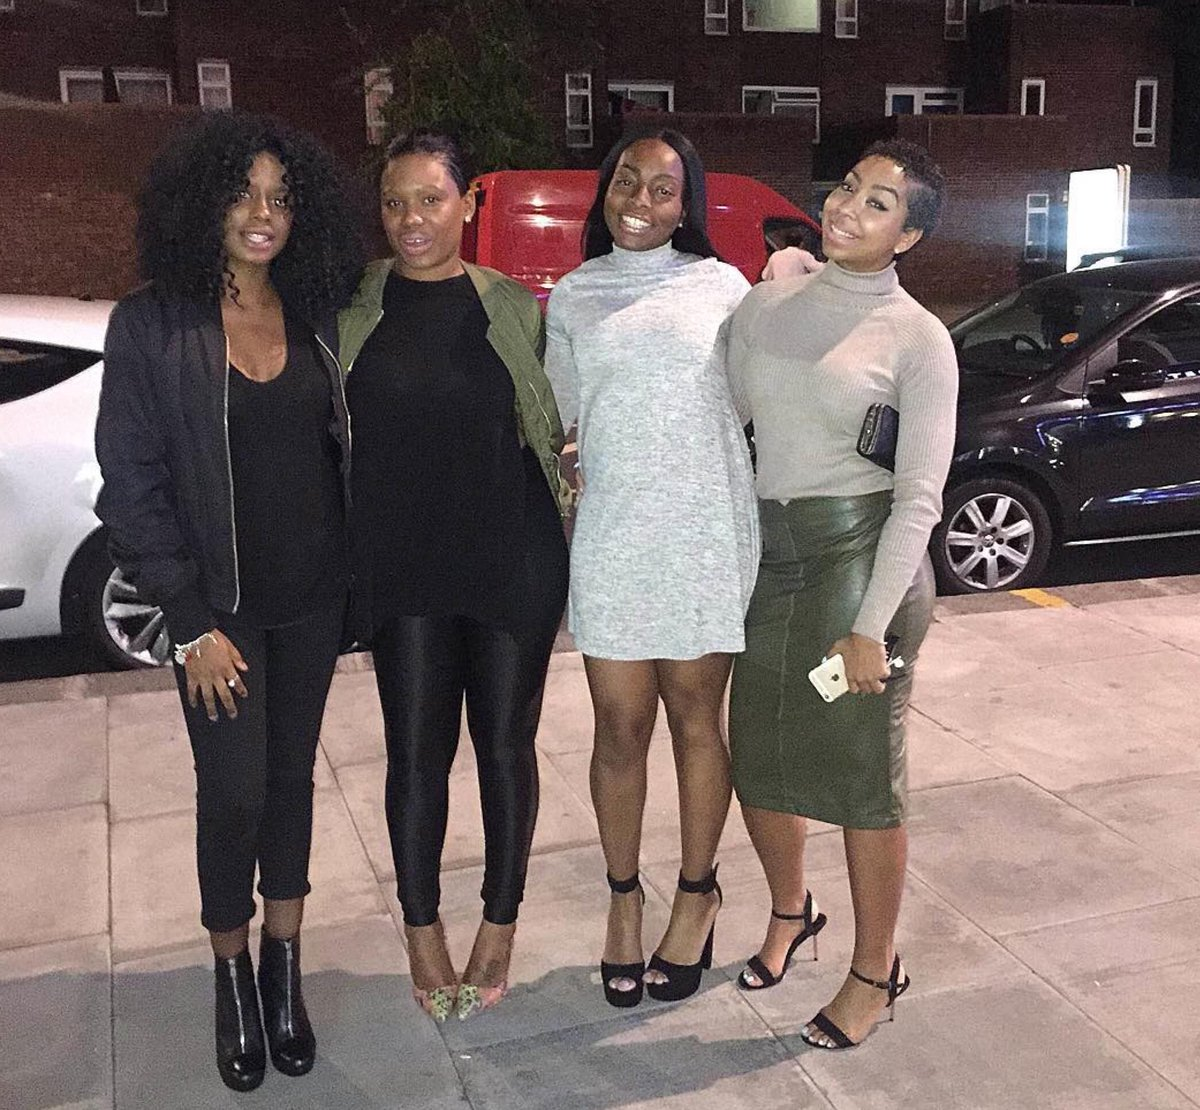 "Clubgoers rejected for being ""too dark"" will protest outside DSTRKT tonight http://t.co/Pj4BgigoE1 via @thevoicenews http://t.co/DynZpYJMDr"